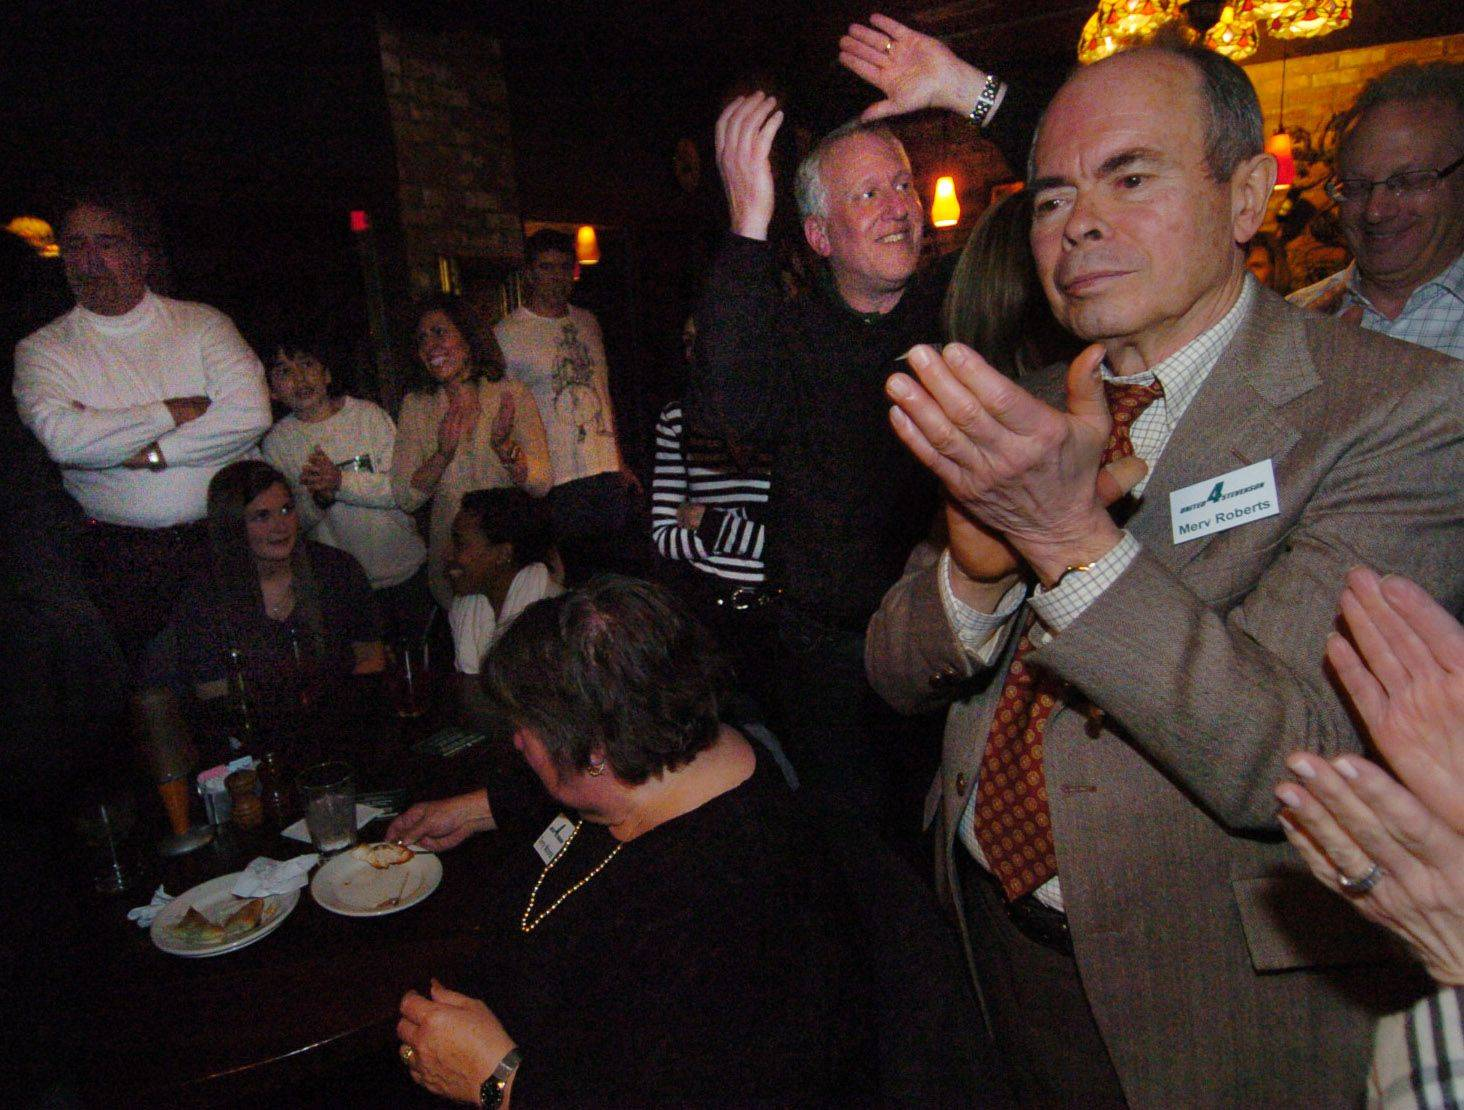 Merv Roberts, right, Bruce Lubin, with arms in the air, along with Terry Moons, seated, and David Weisberg, far left, celebrate during Stevenson High School District 125 victory party.